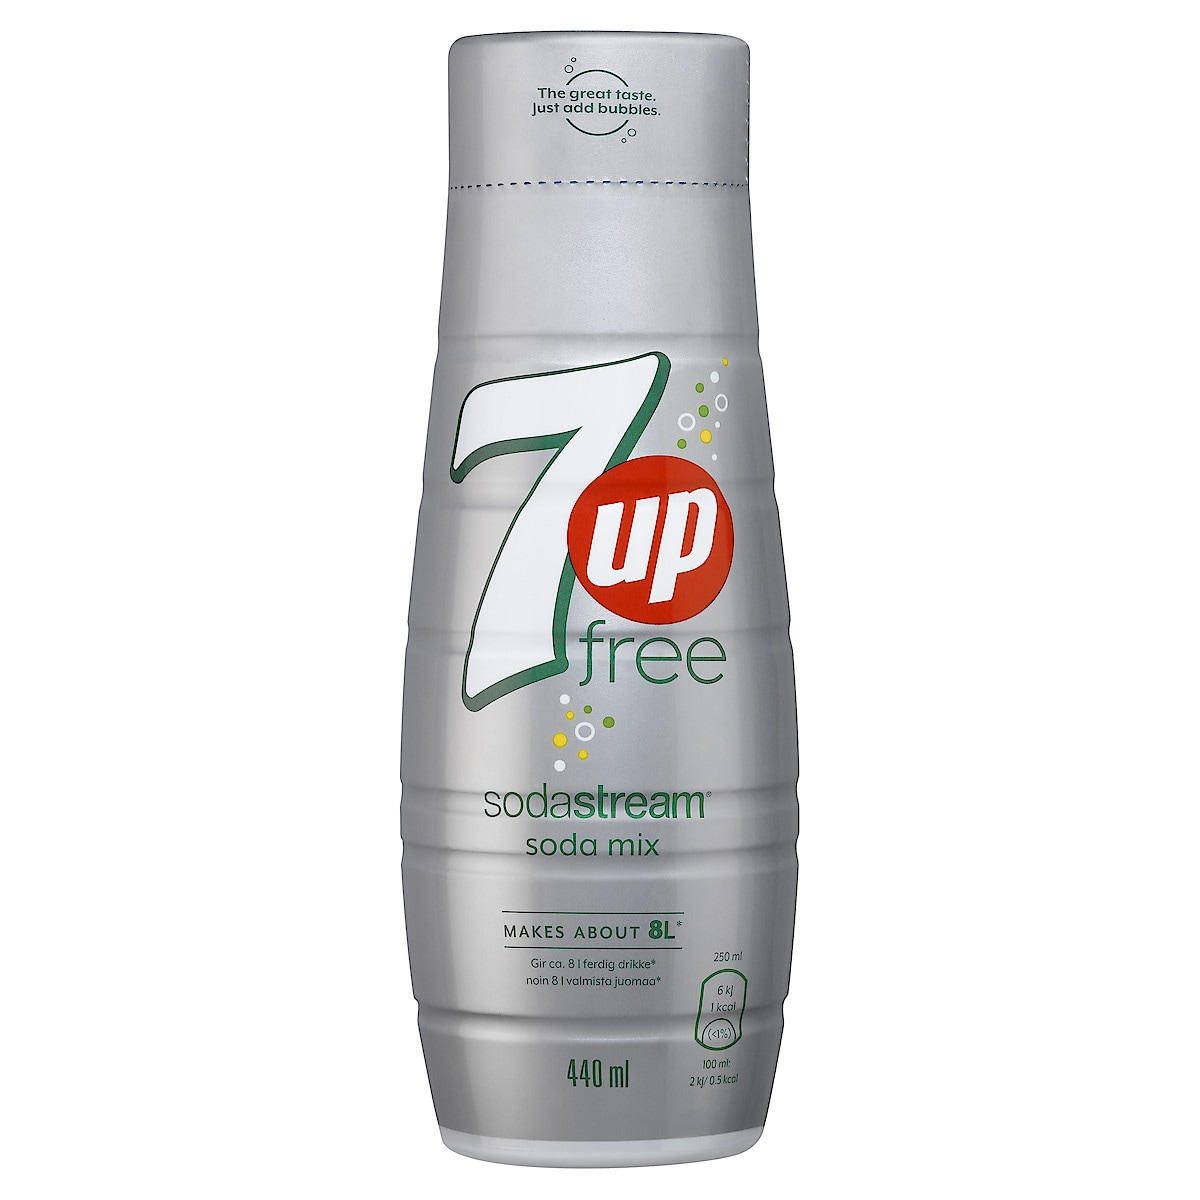 Sodastream Pepsi 7UP Free smakkoncentrat 440 ml